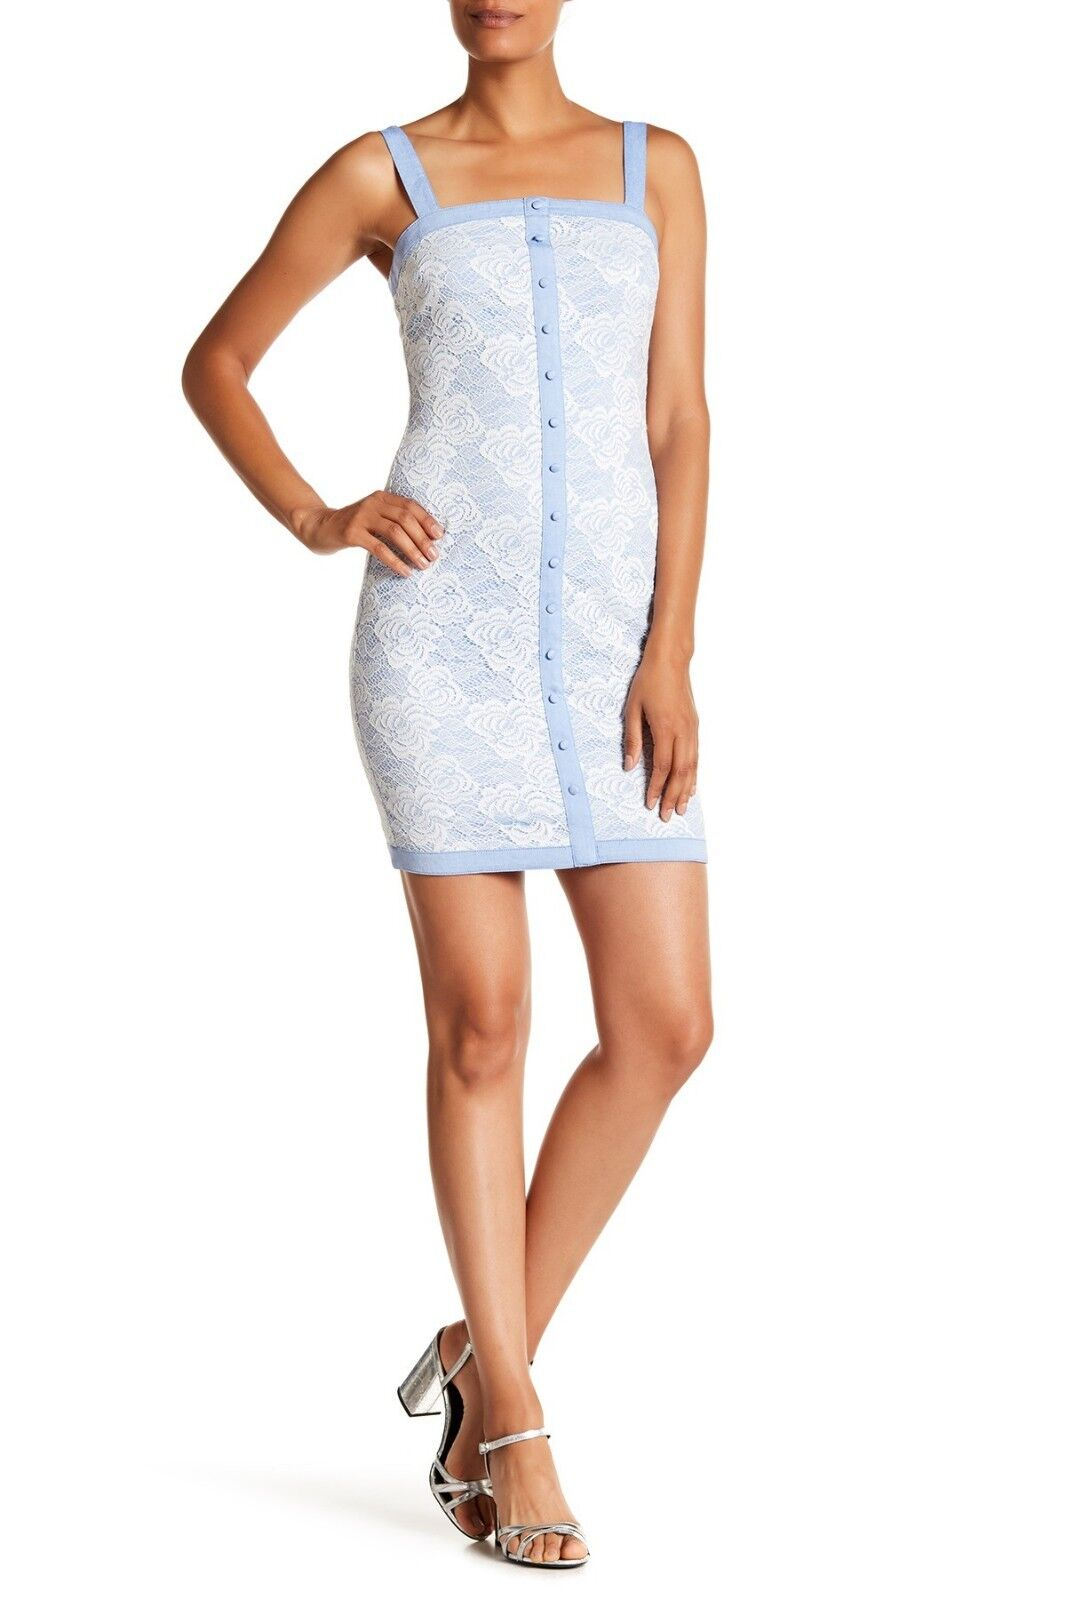 145 Authentic Rare GUESS Women's bluee Miss Sixty Front Button Lace Dress